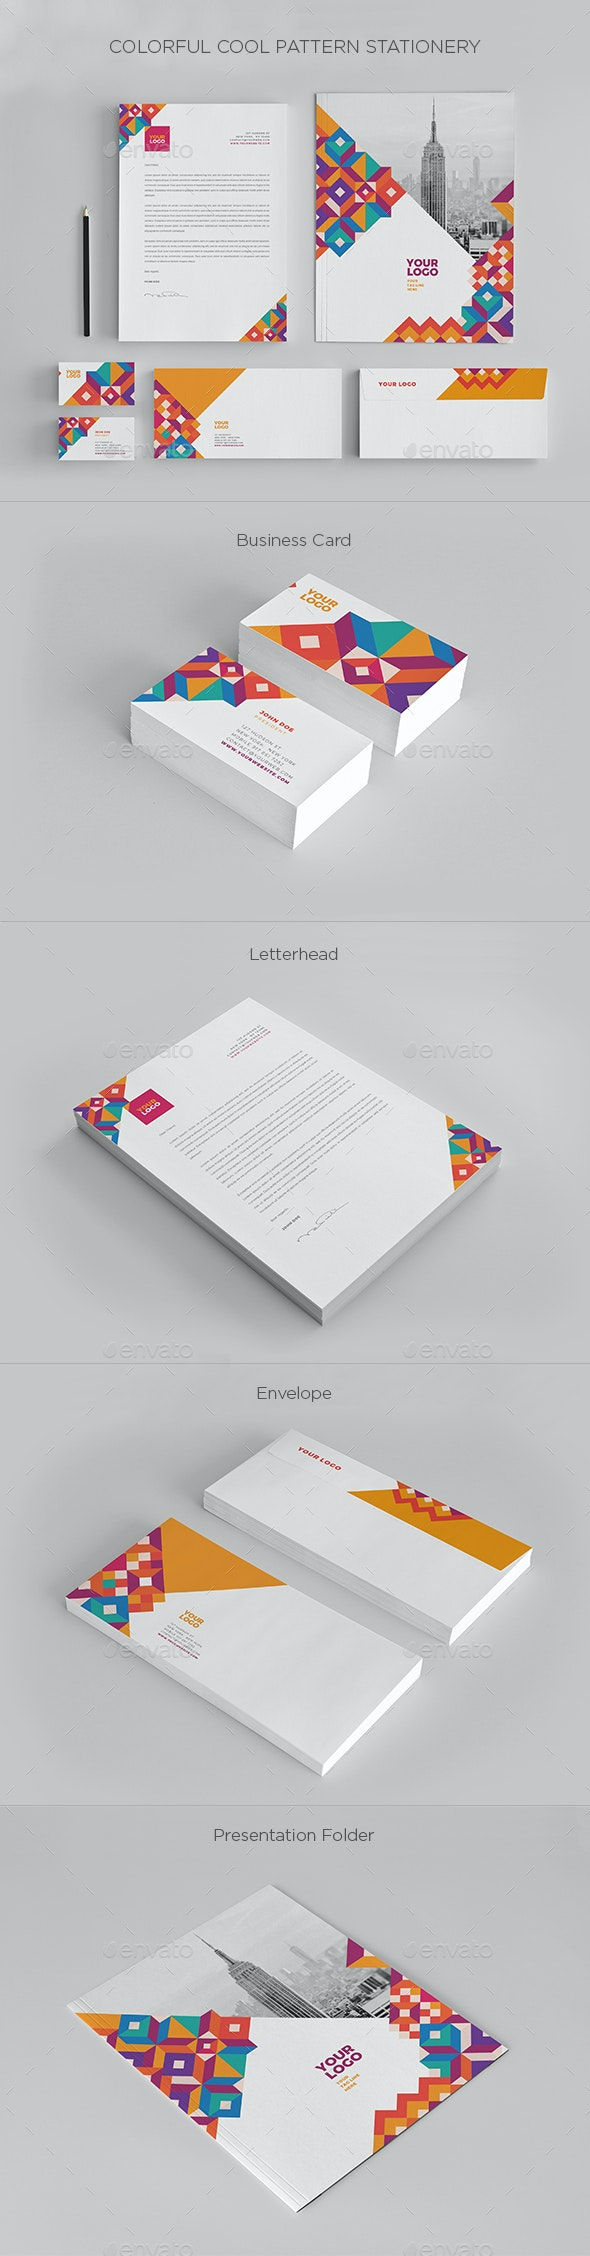 Colorful Cool Pattern Stationery - Stationery Print Templates